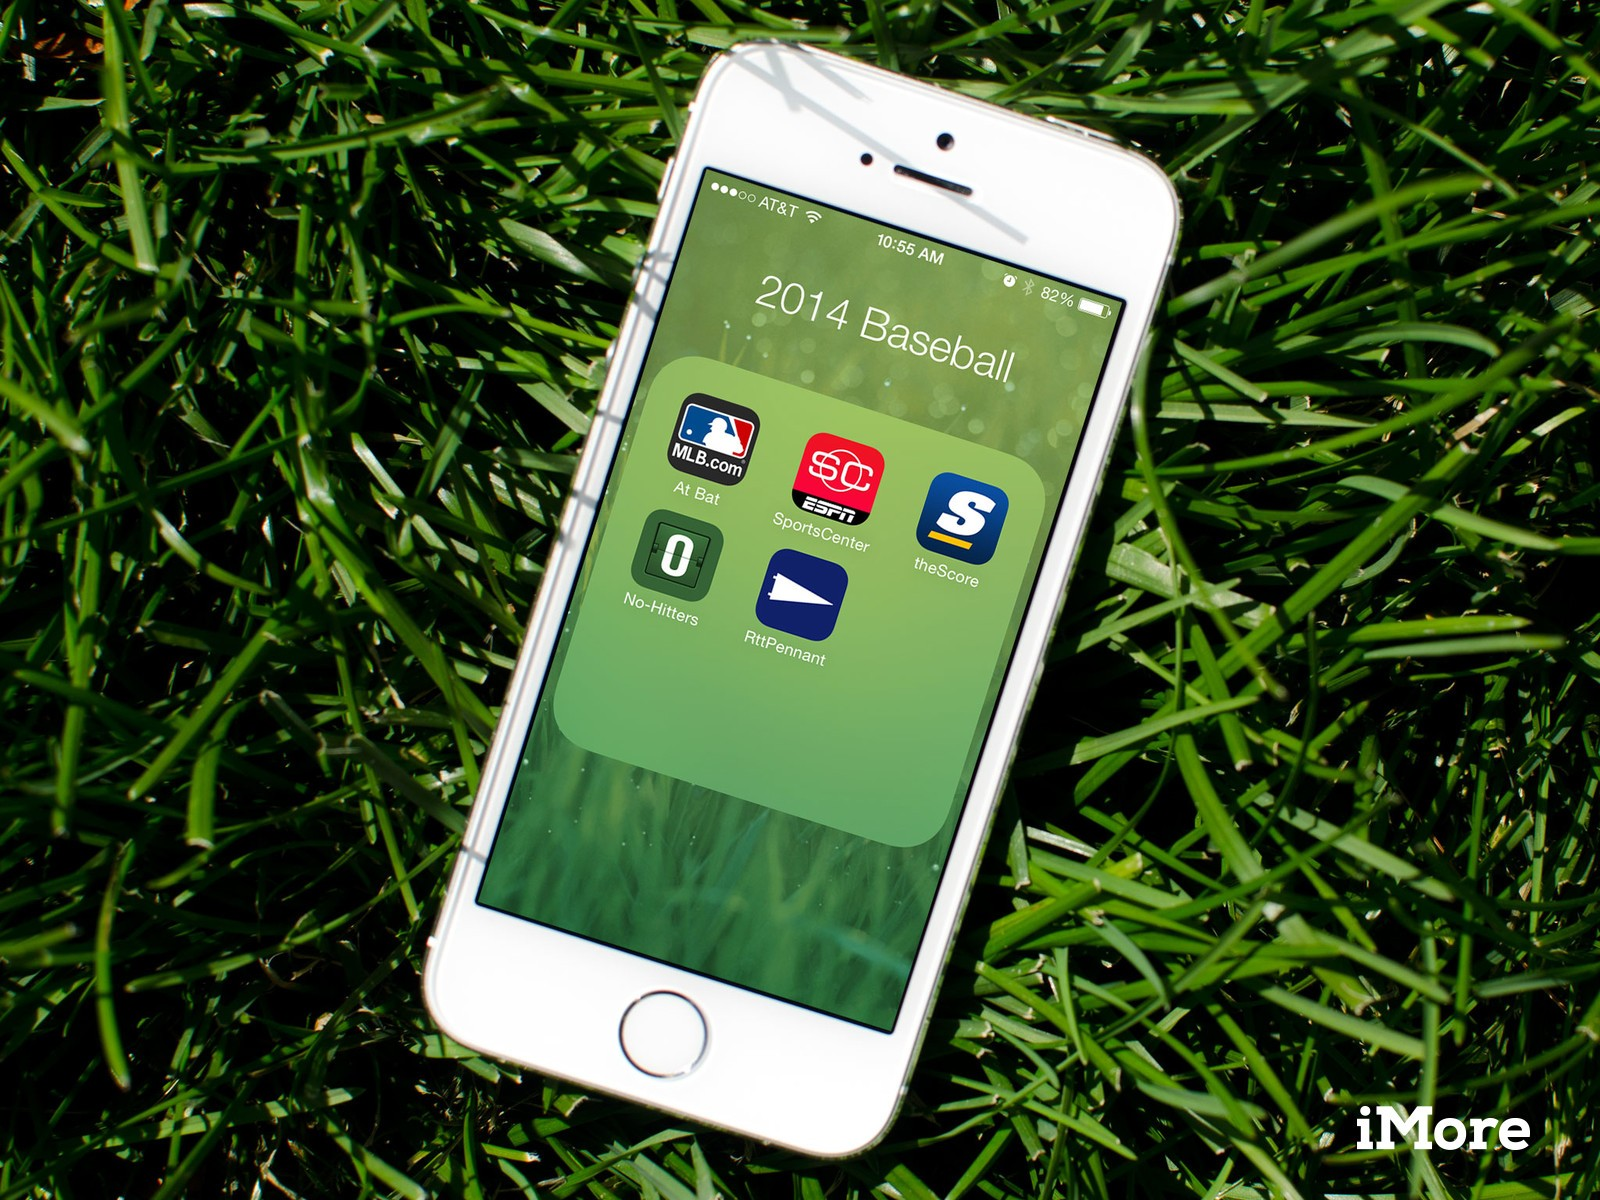 Best iPhone apps to follow the 2014 baseball season